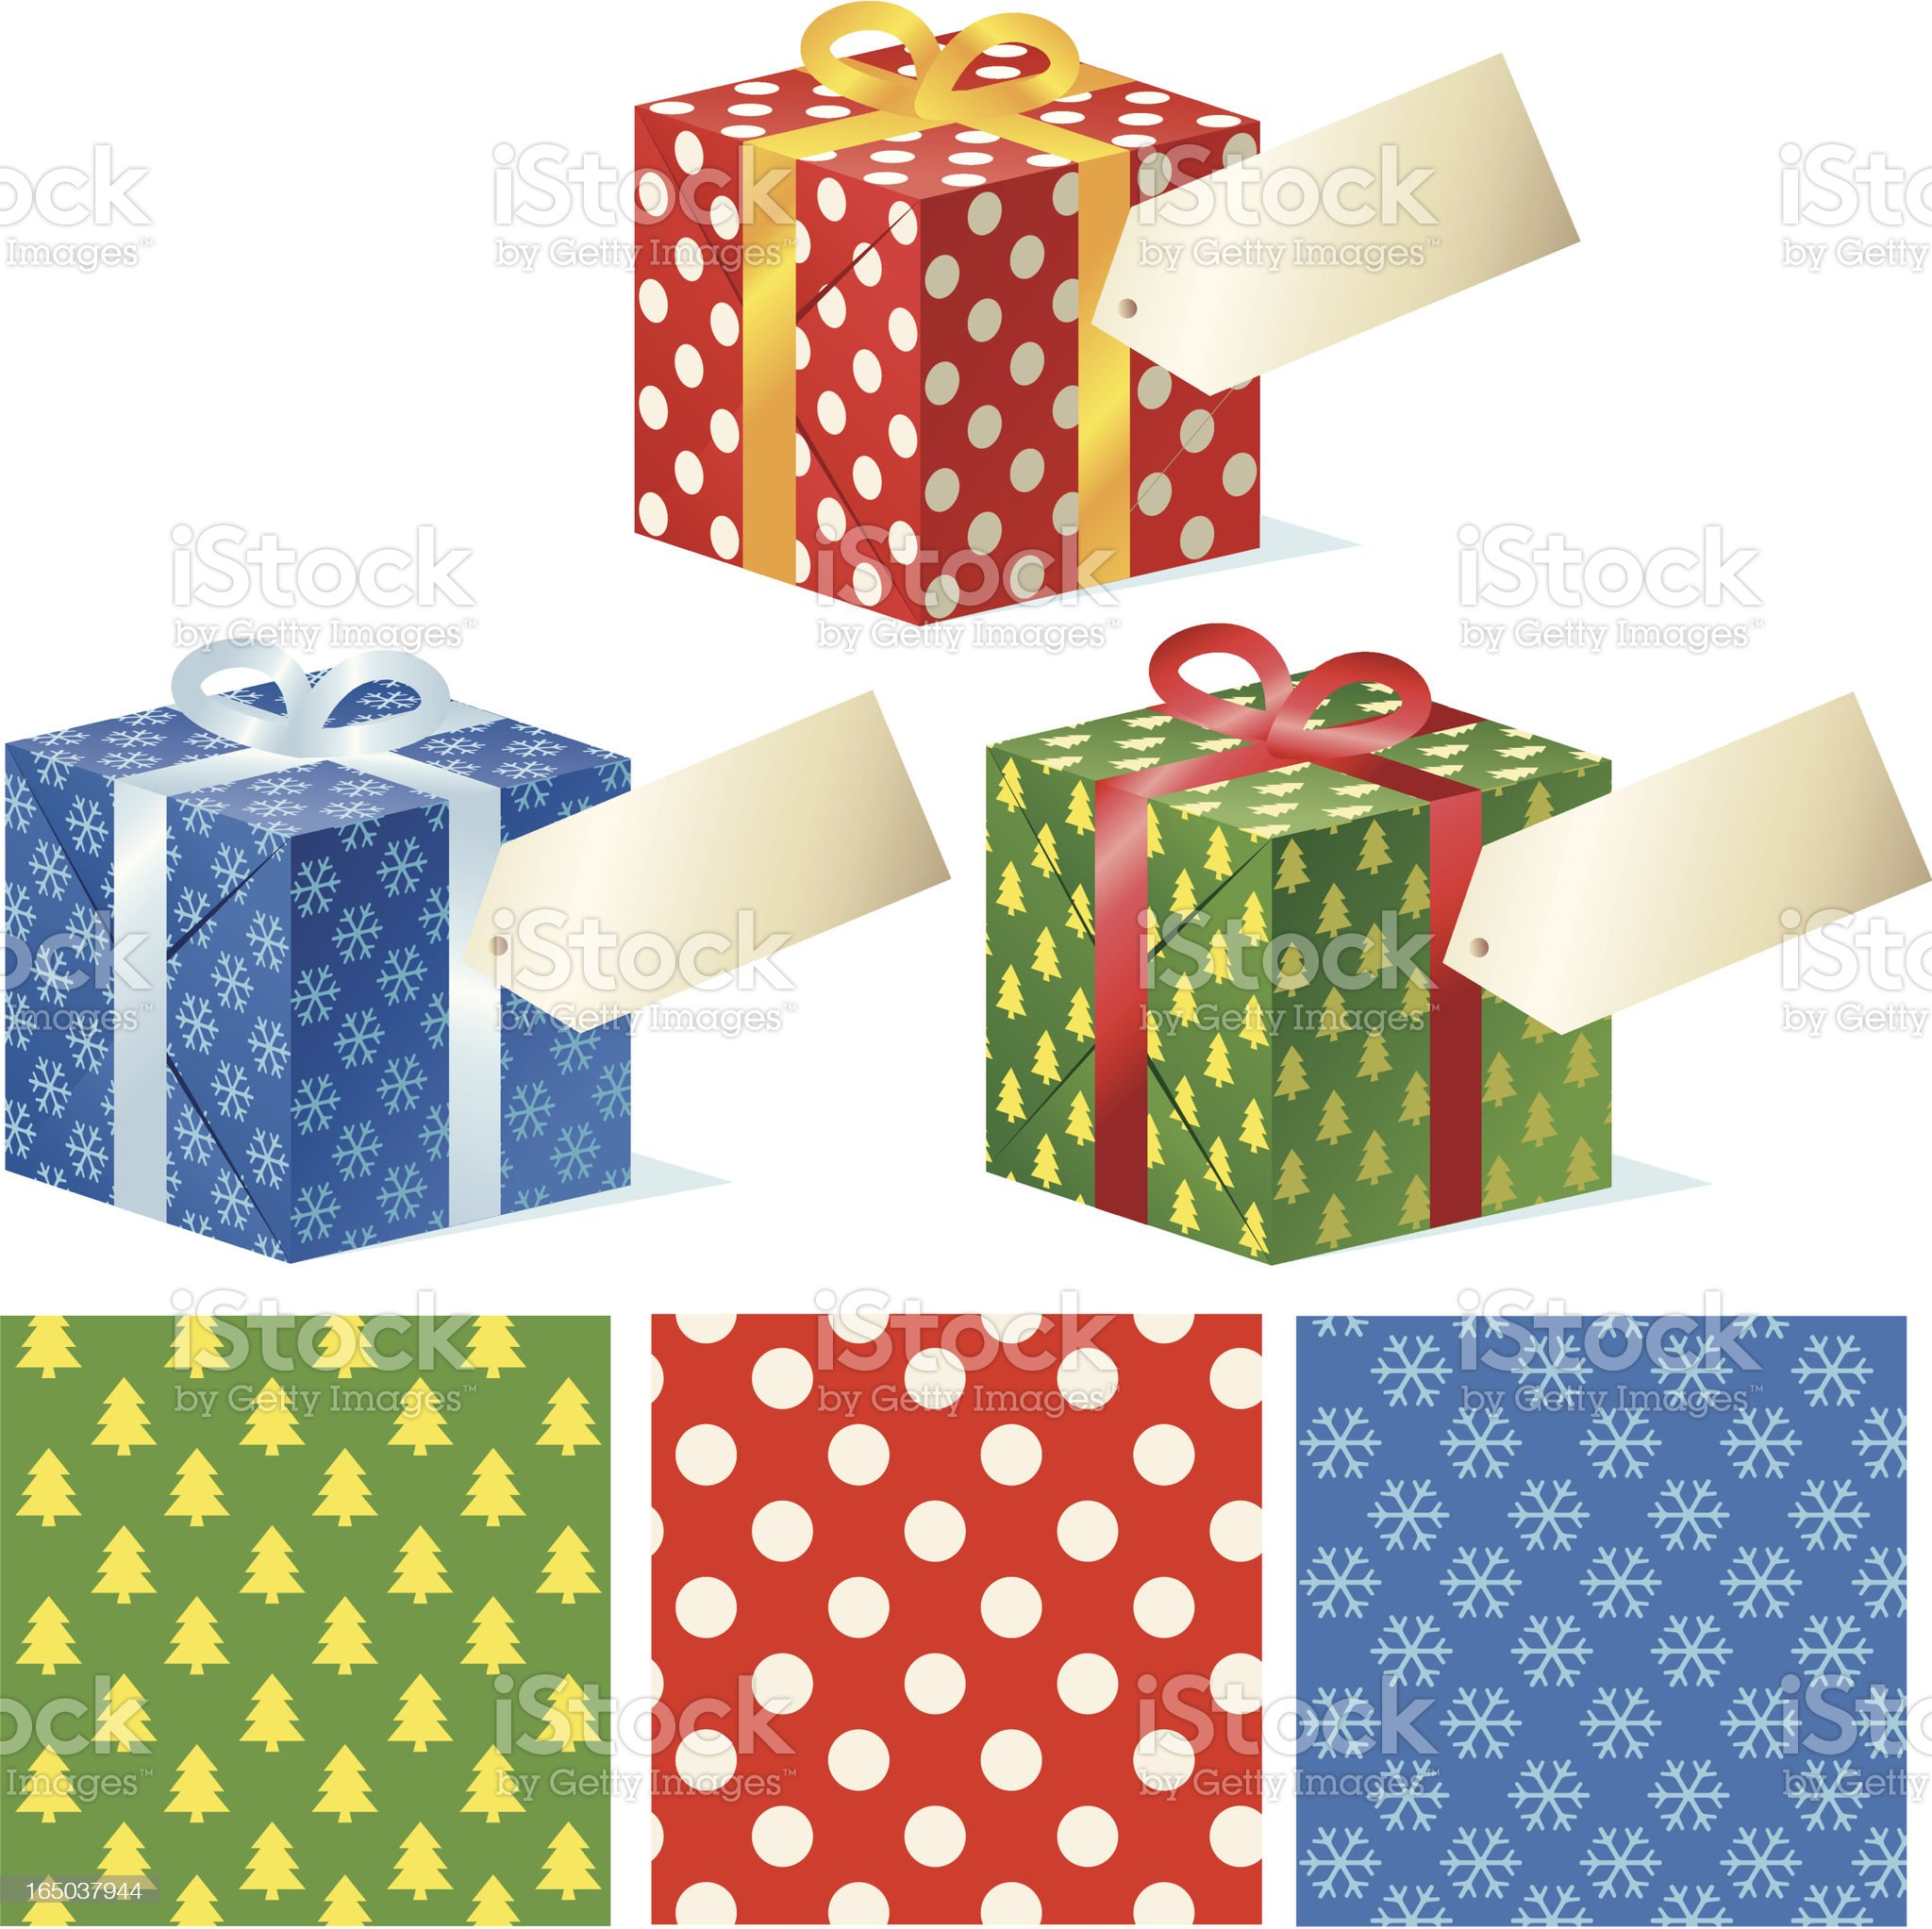 Three Gift Wrapped Boxes + Patterns royalty-free stock vector art